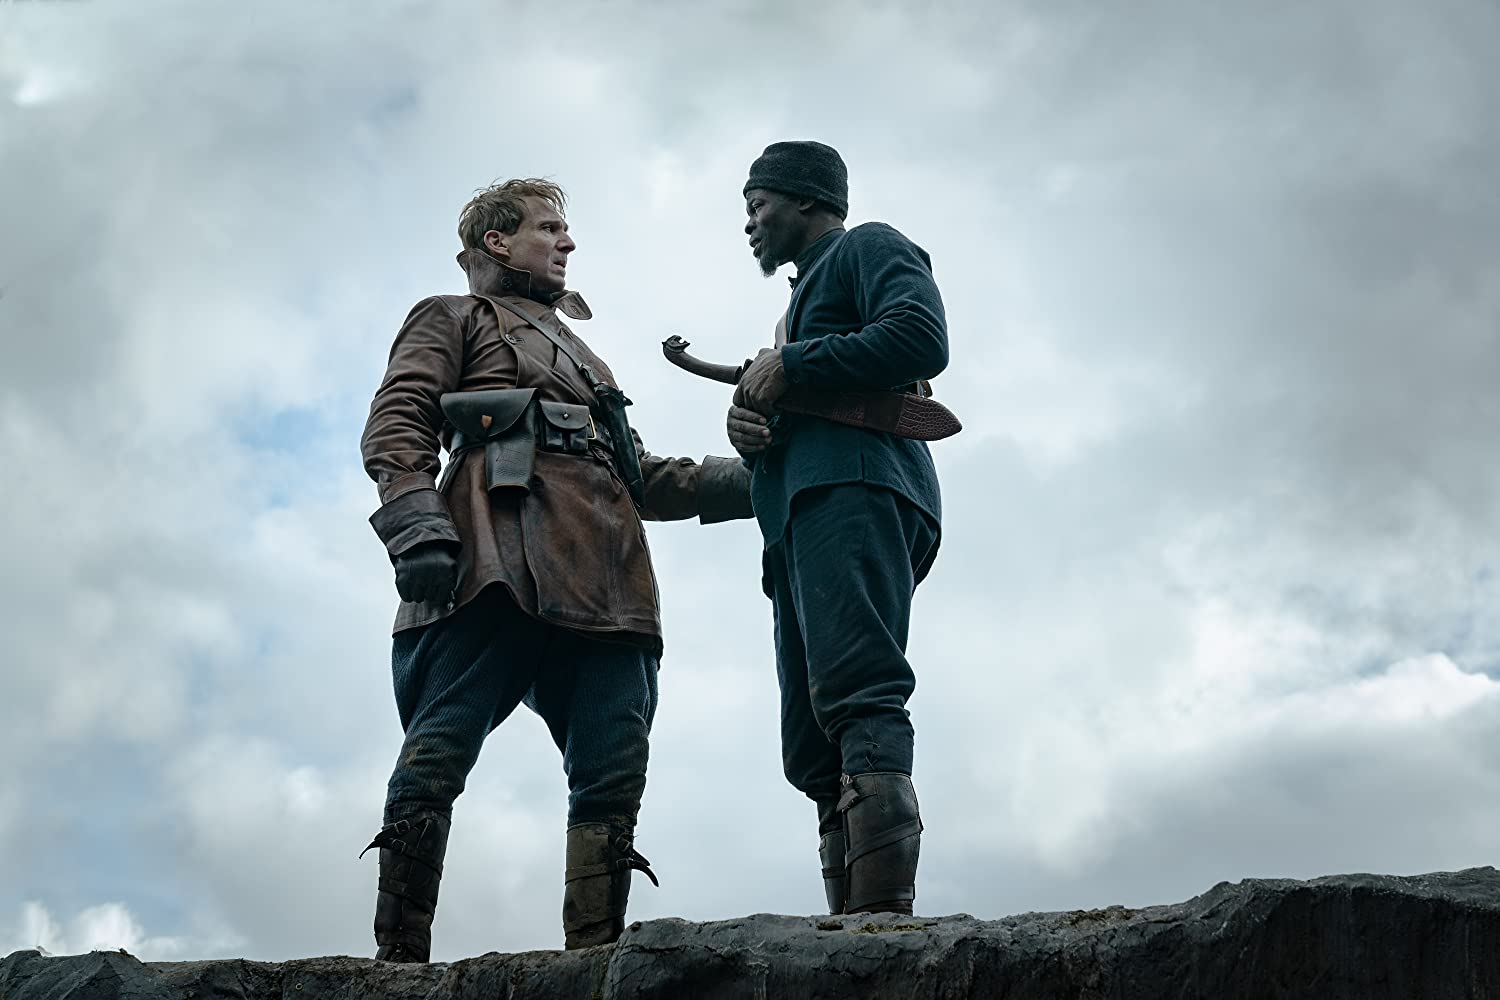 Ralph Fiennes and Djimon Hounsou in The King's Man (2020)